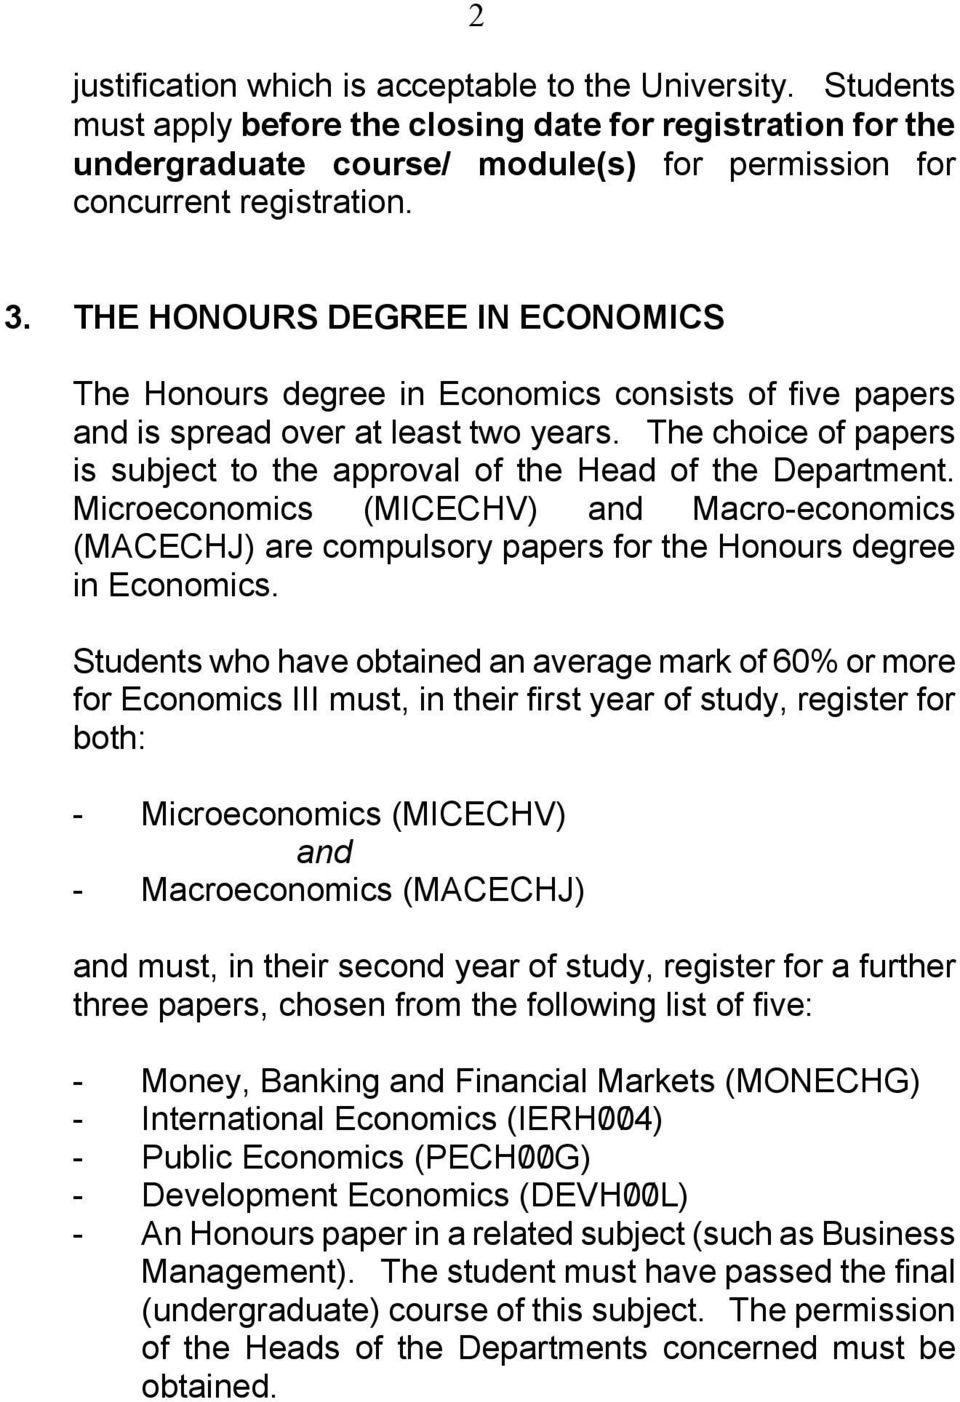 The choice of papers is subject to the approval of the Head of the Department. Microeconomics (MICECHV) and Macro-economics (MACECHJ) are compulsory papers for the Honours degree in Economics.